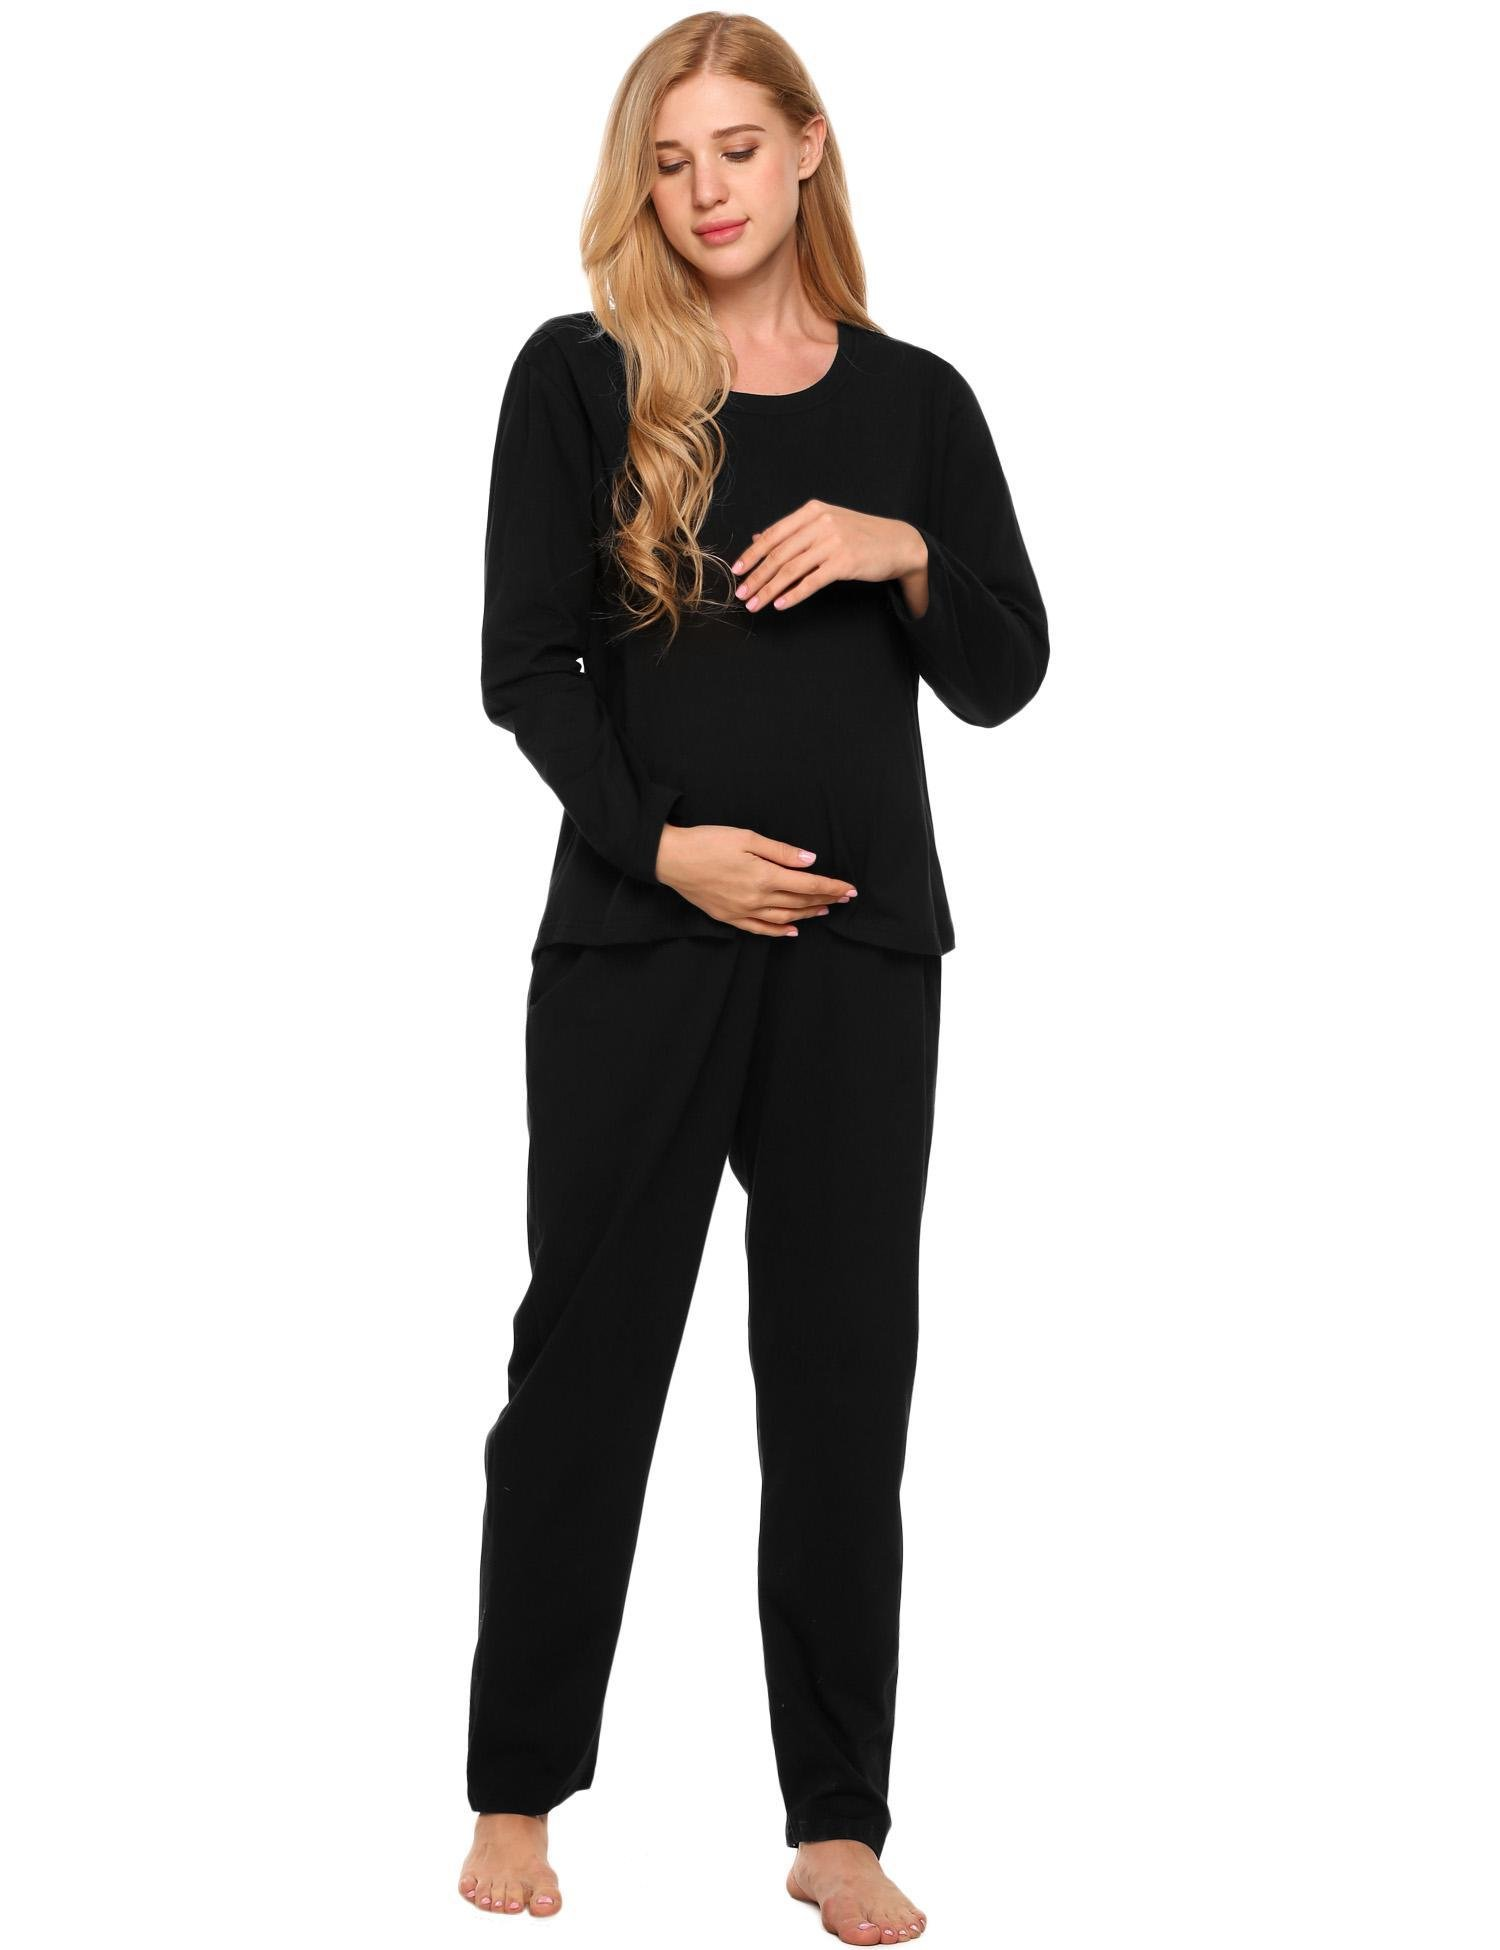 etuoji Soft Maternity Nursing Pajamas Set Long Sleeve Cotton Breastfeeding Loungewear Sleepwear